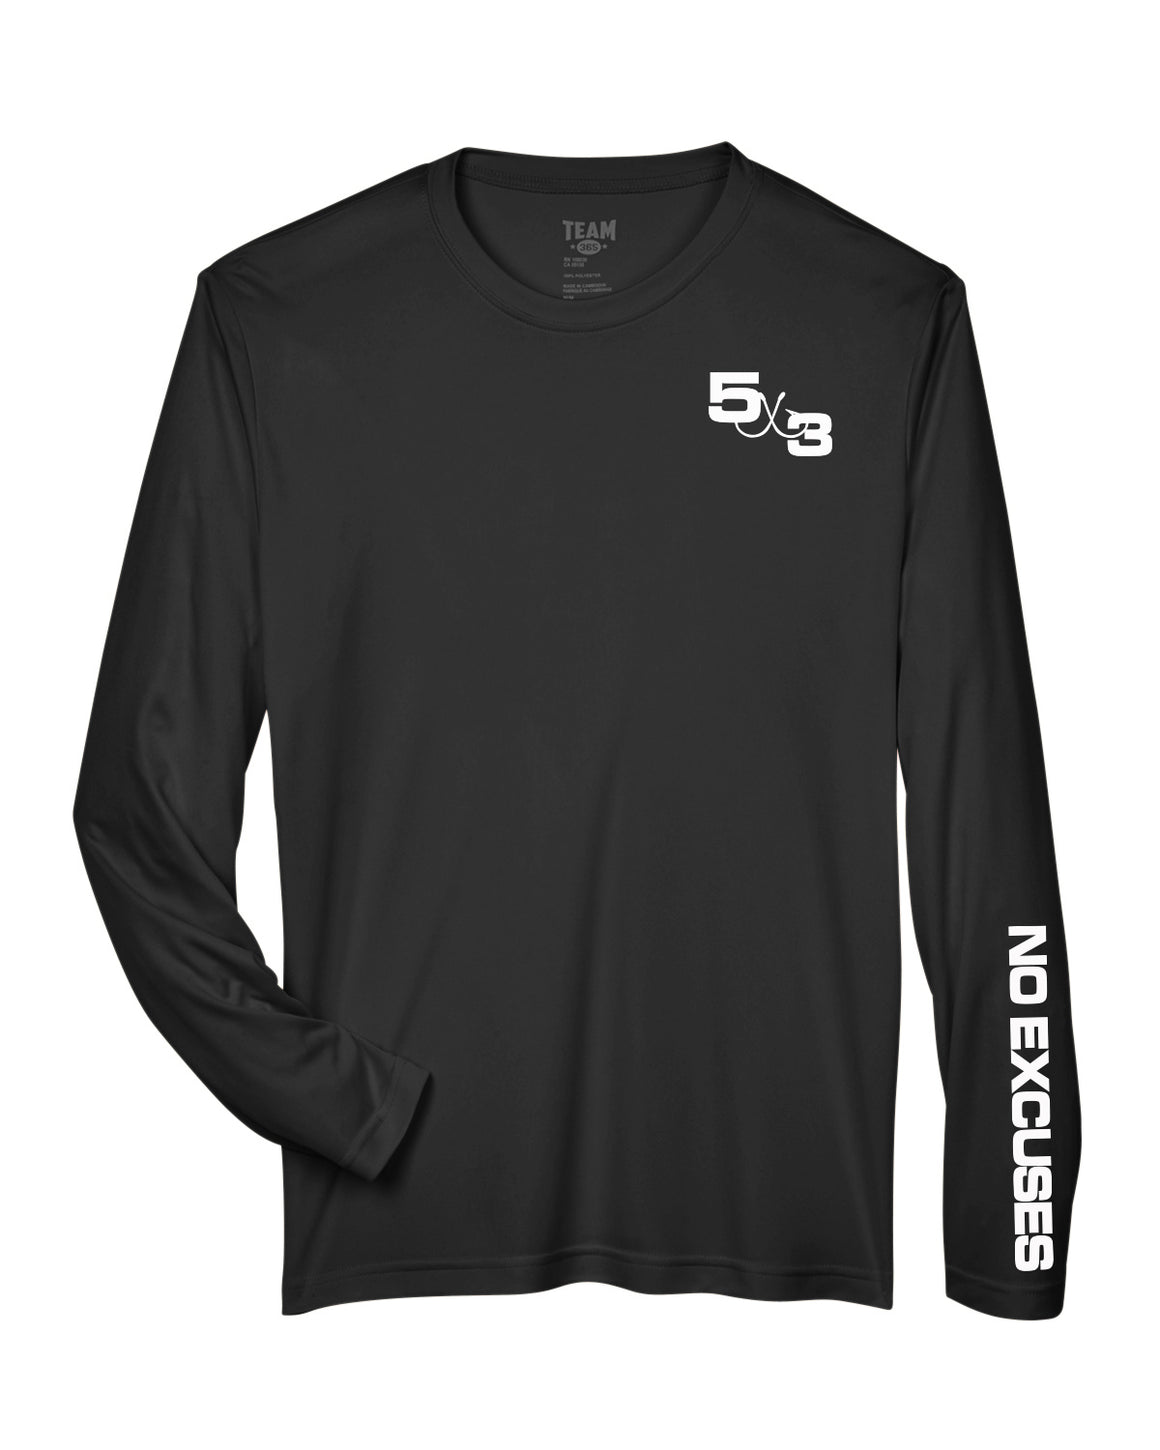 Angler strive long sleeve moisture wicking (Spf50)